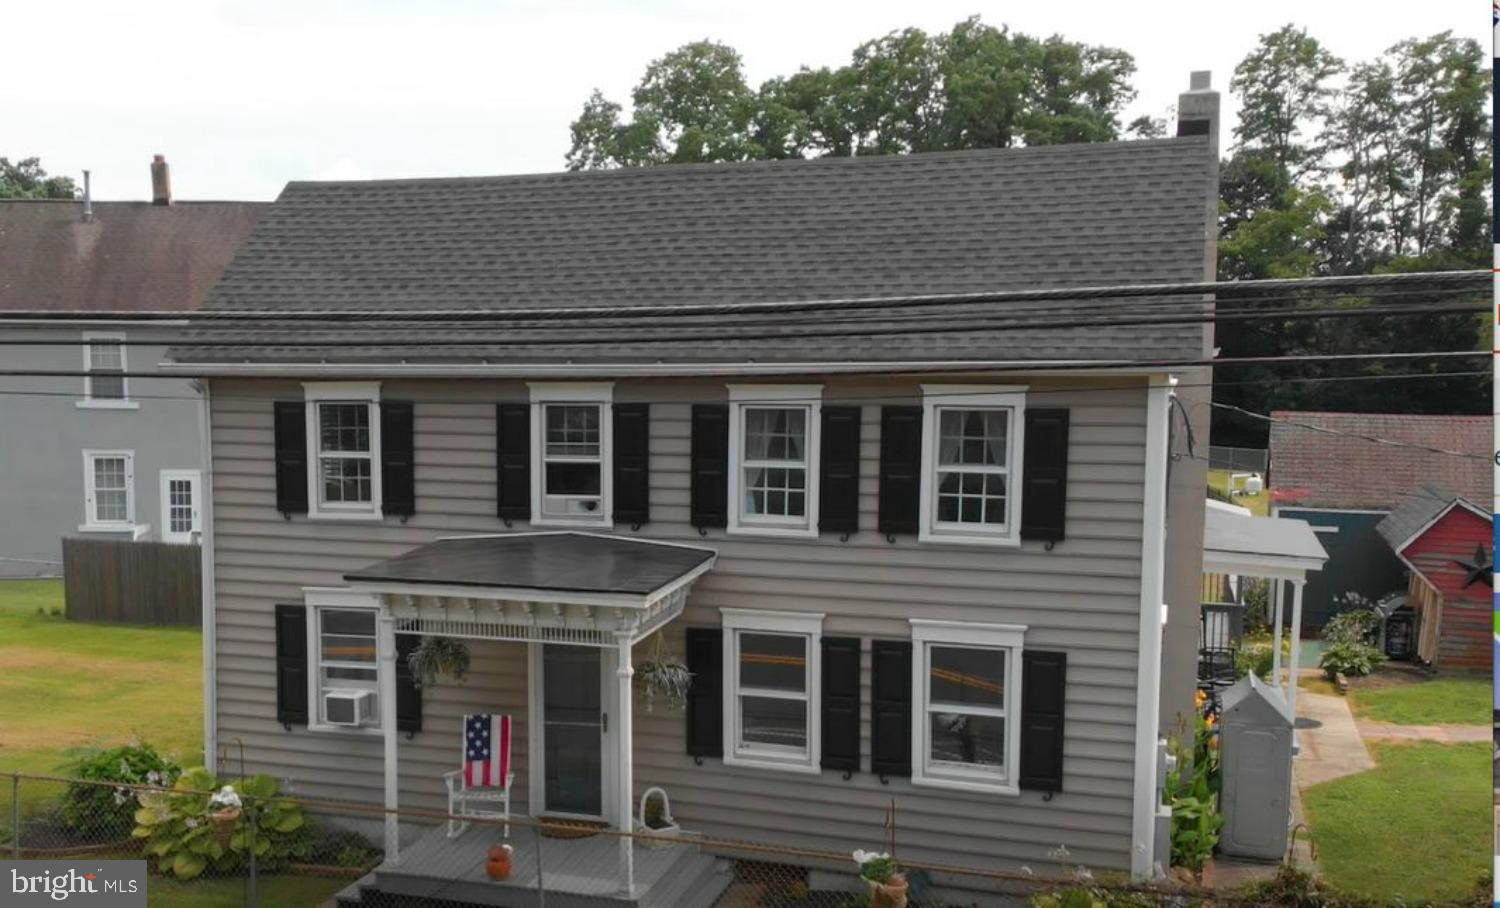 6 CHESTERFIELD JACOBSTOWN ROAD, WRIGHTSTOWN, NJ 08562